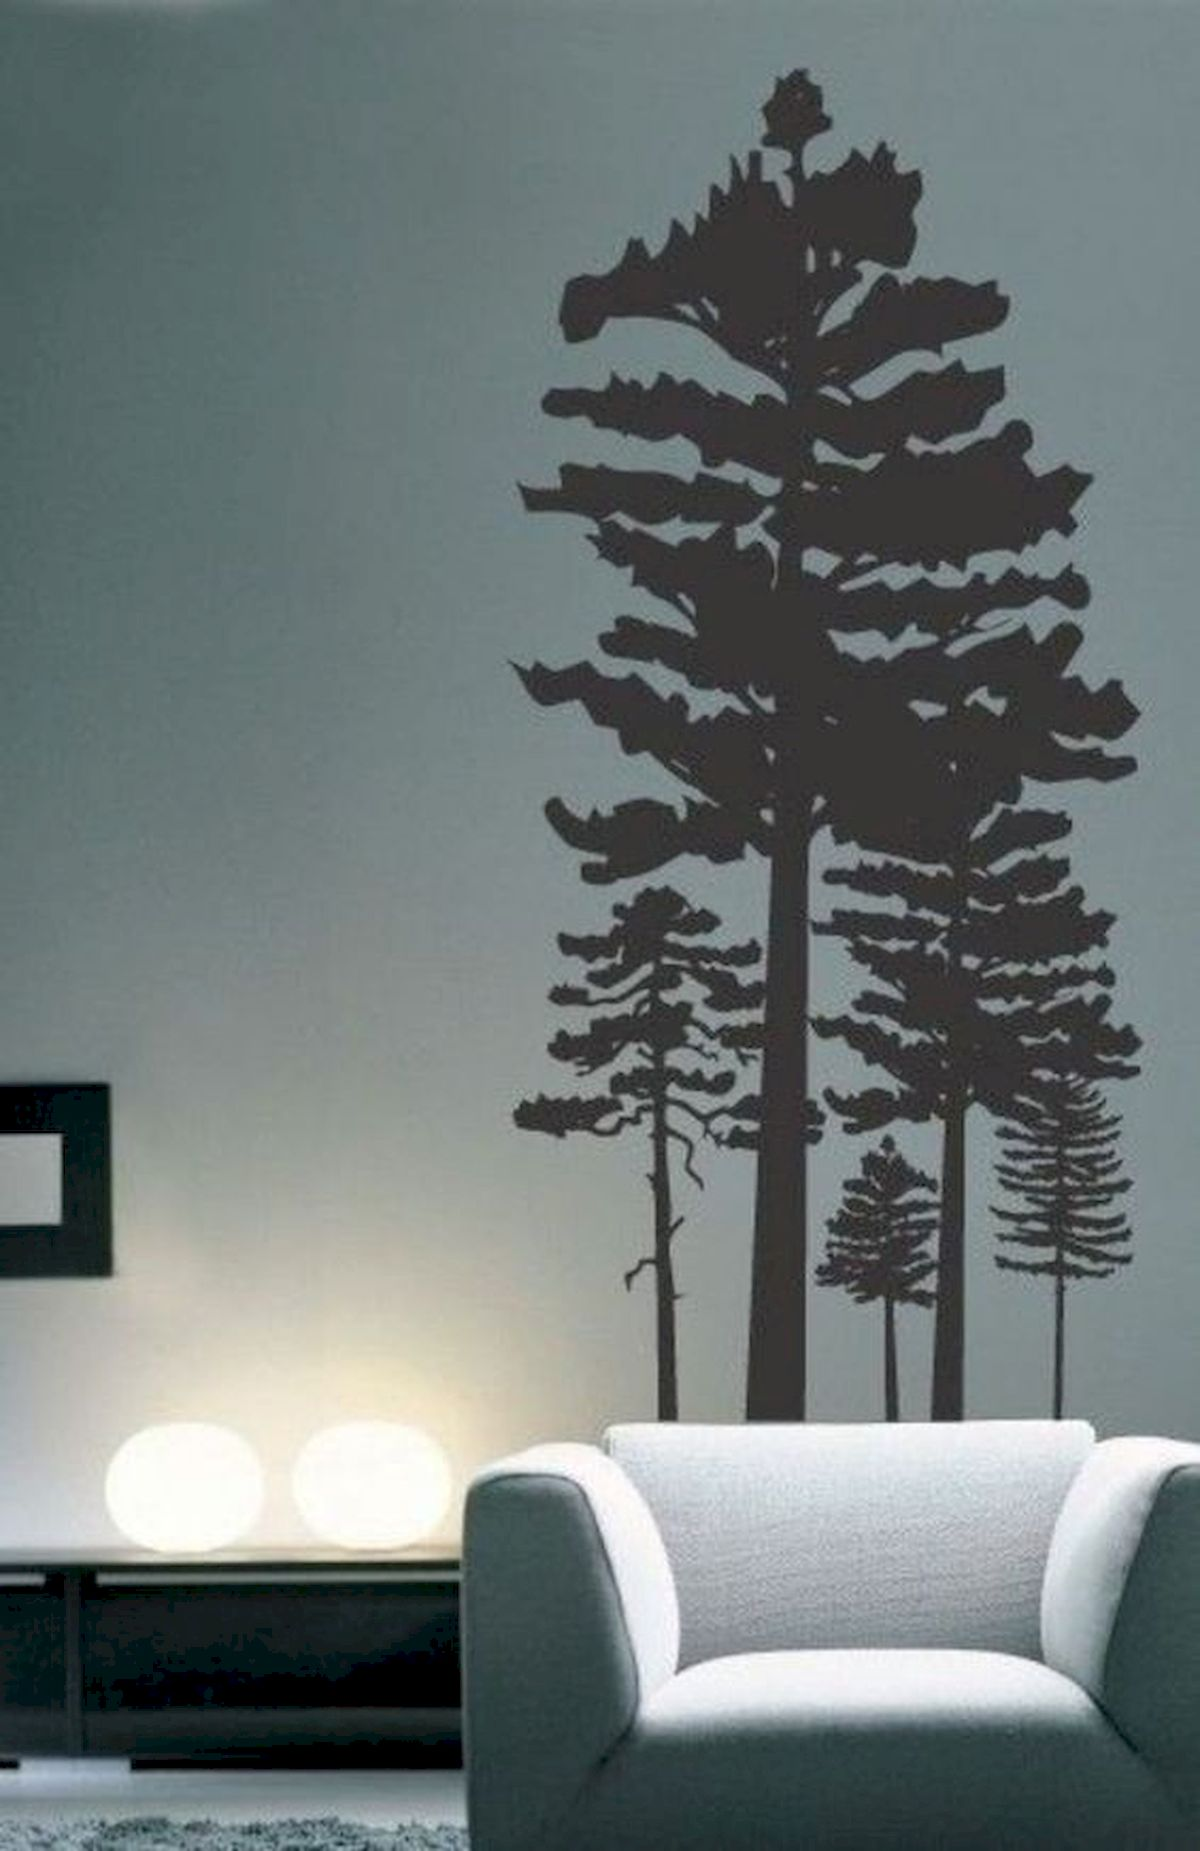 44 Easy But Awesome DIY Wall Painting Ideas To Decorate Your Home (4)